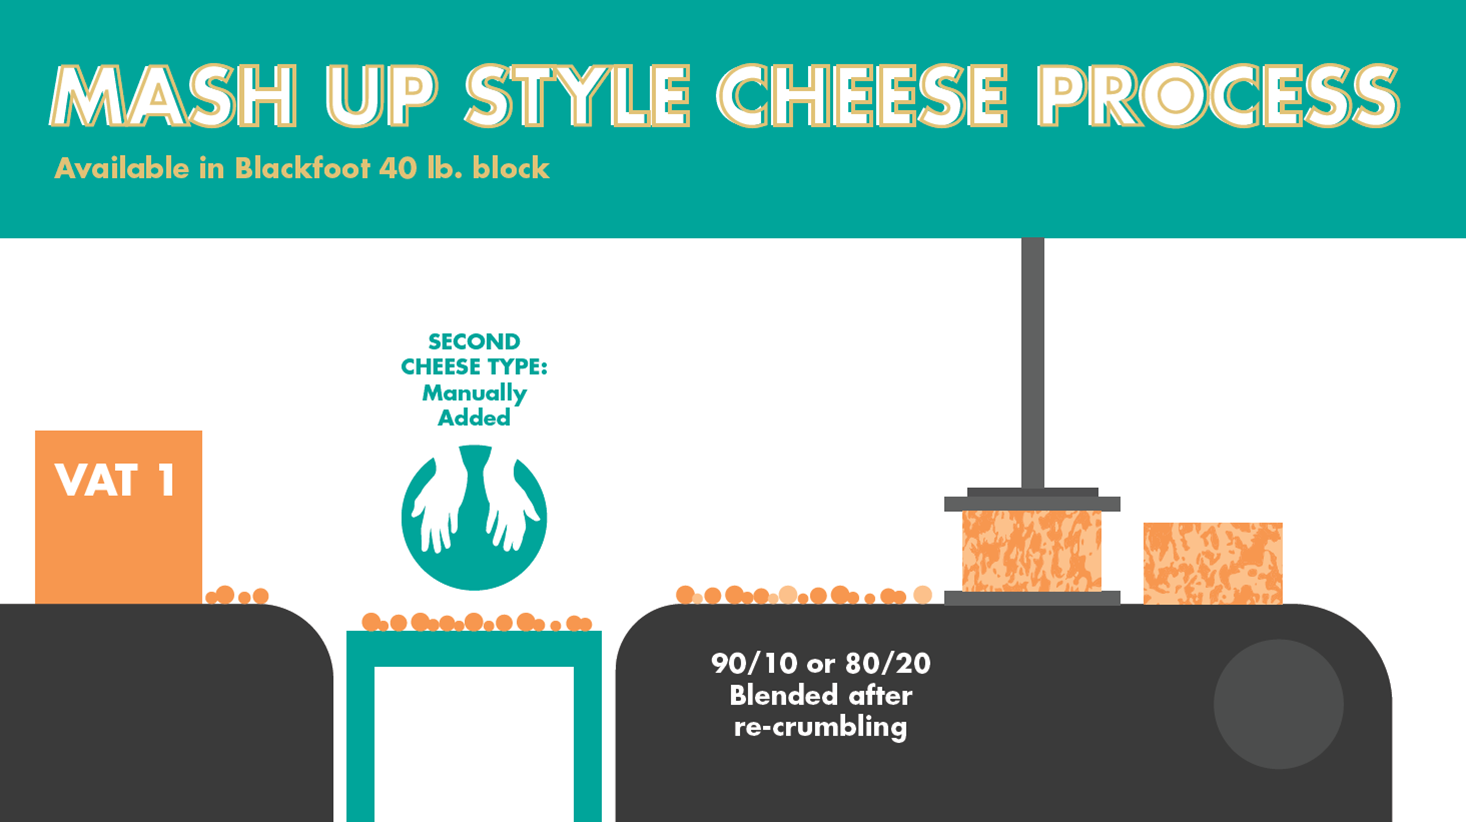 mash up style cheese process